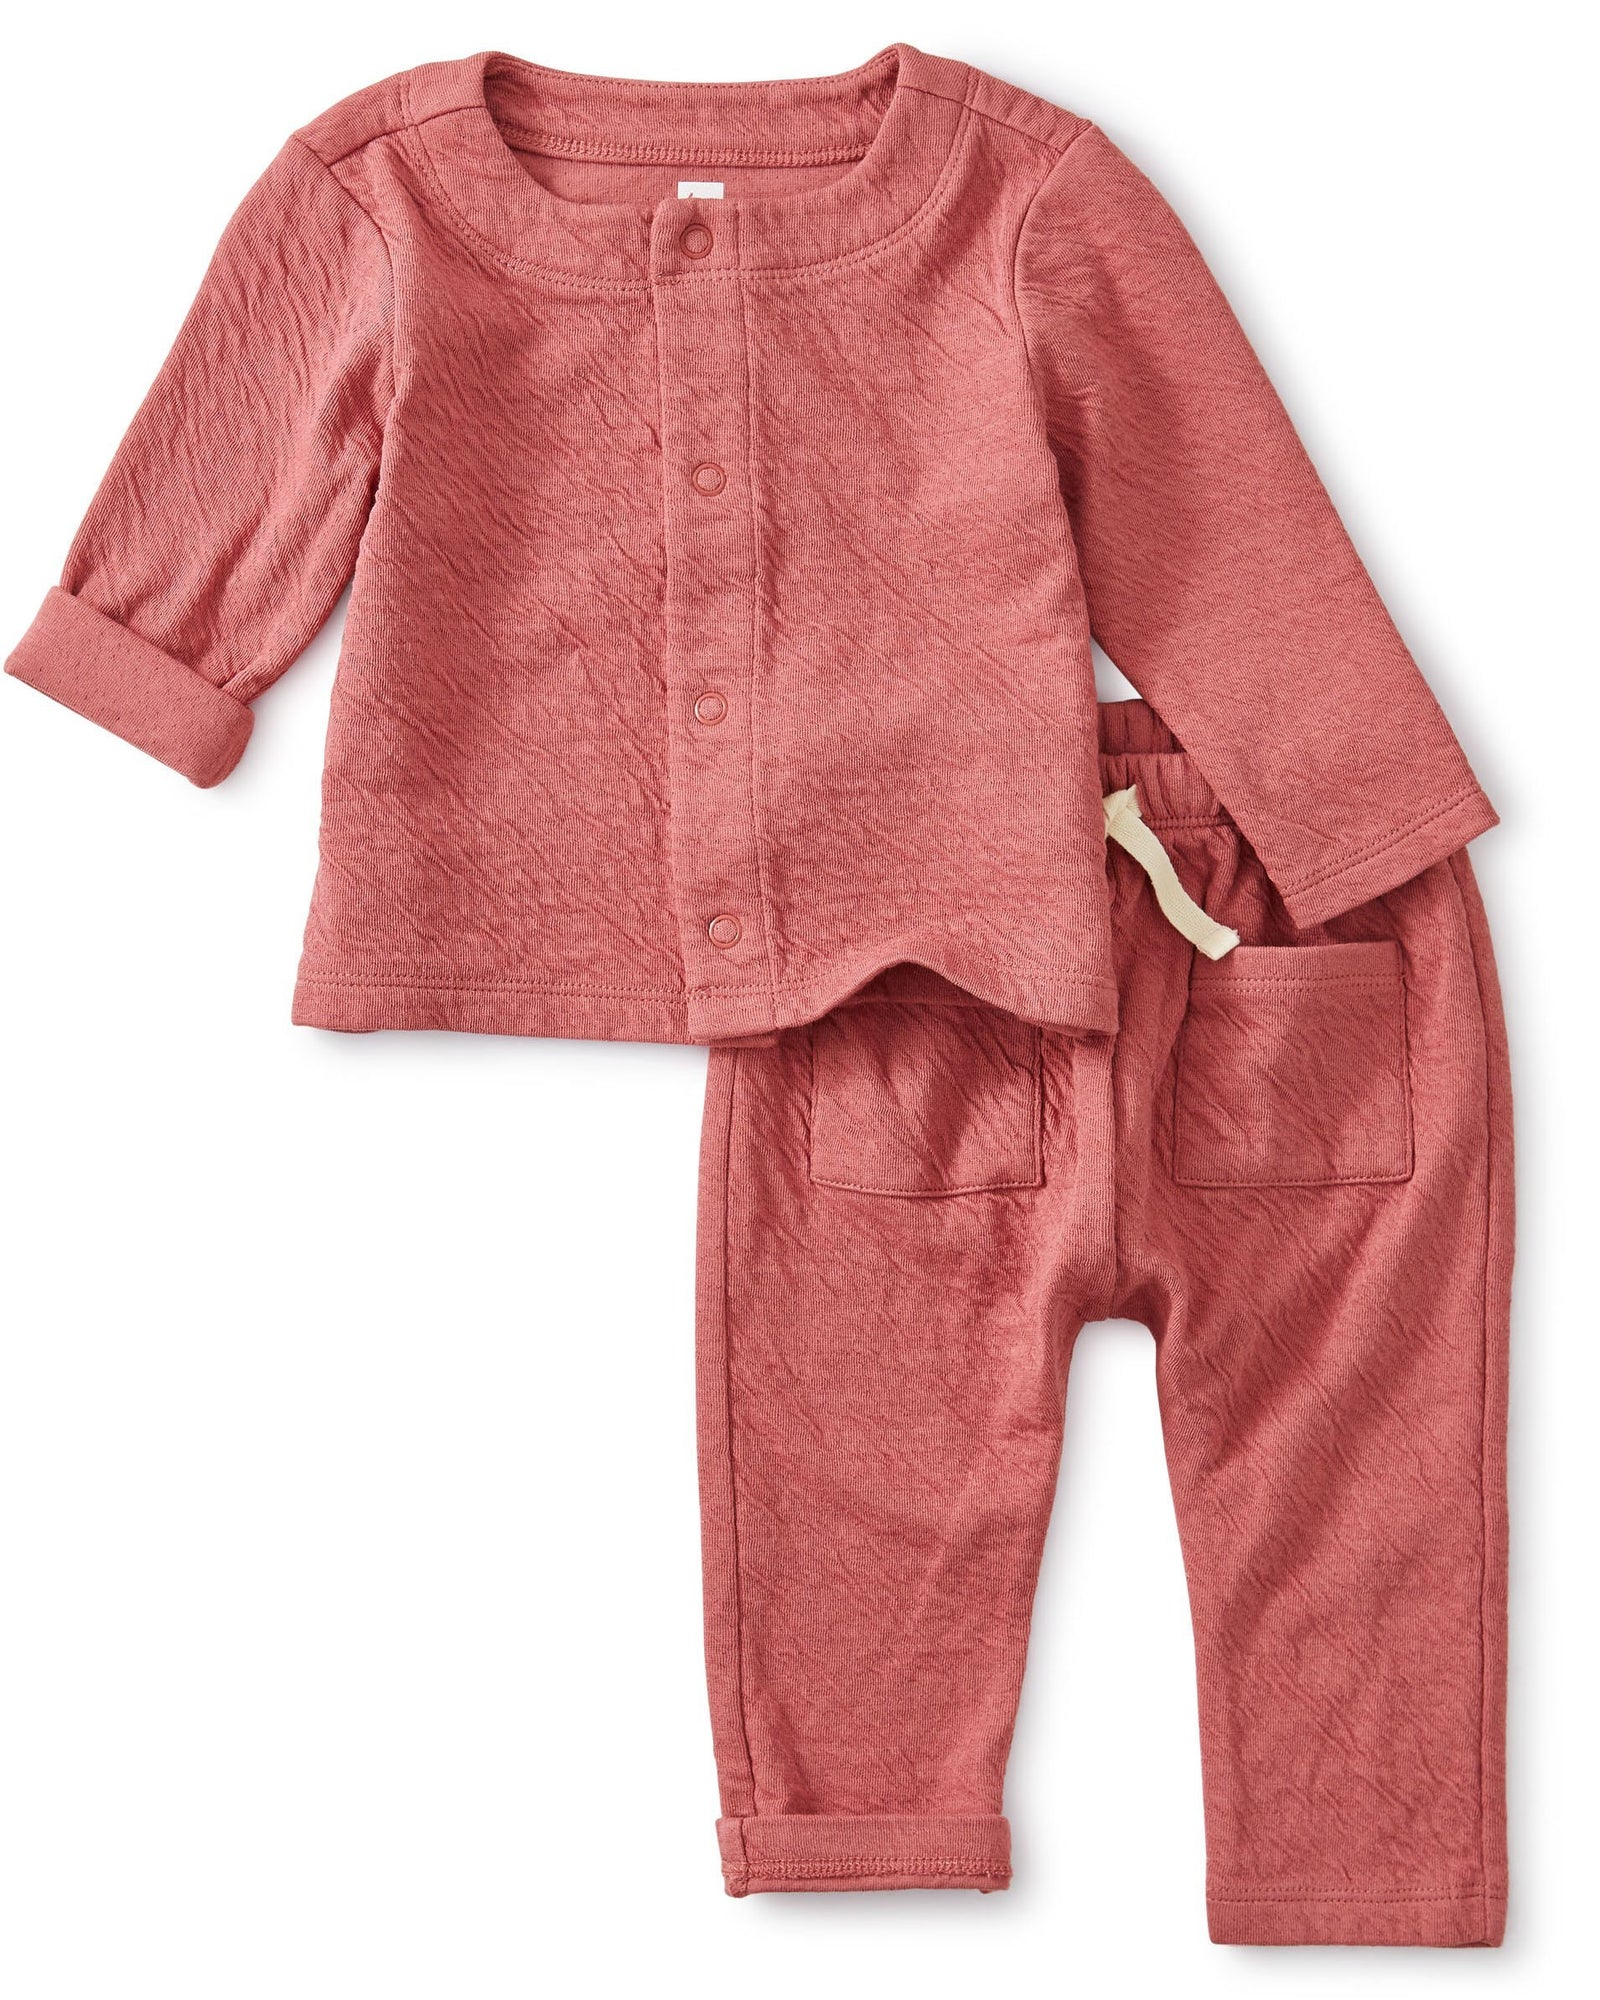 Little tea collection layette match made rose crinkle set